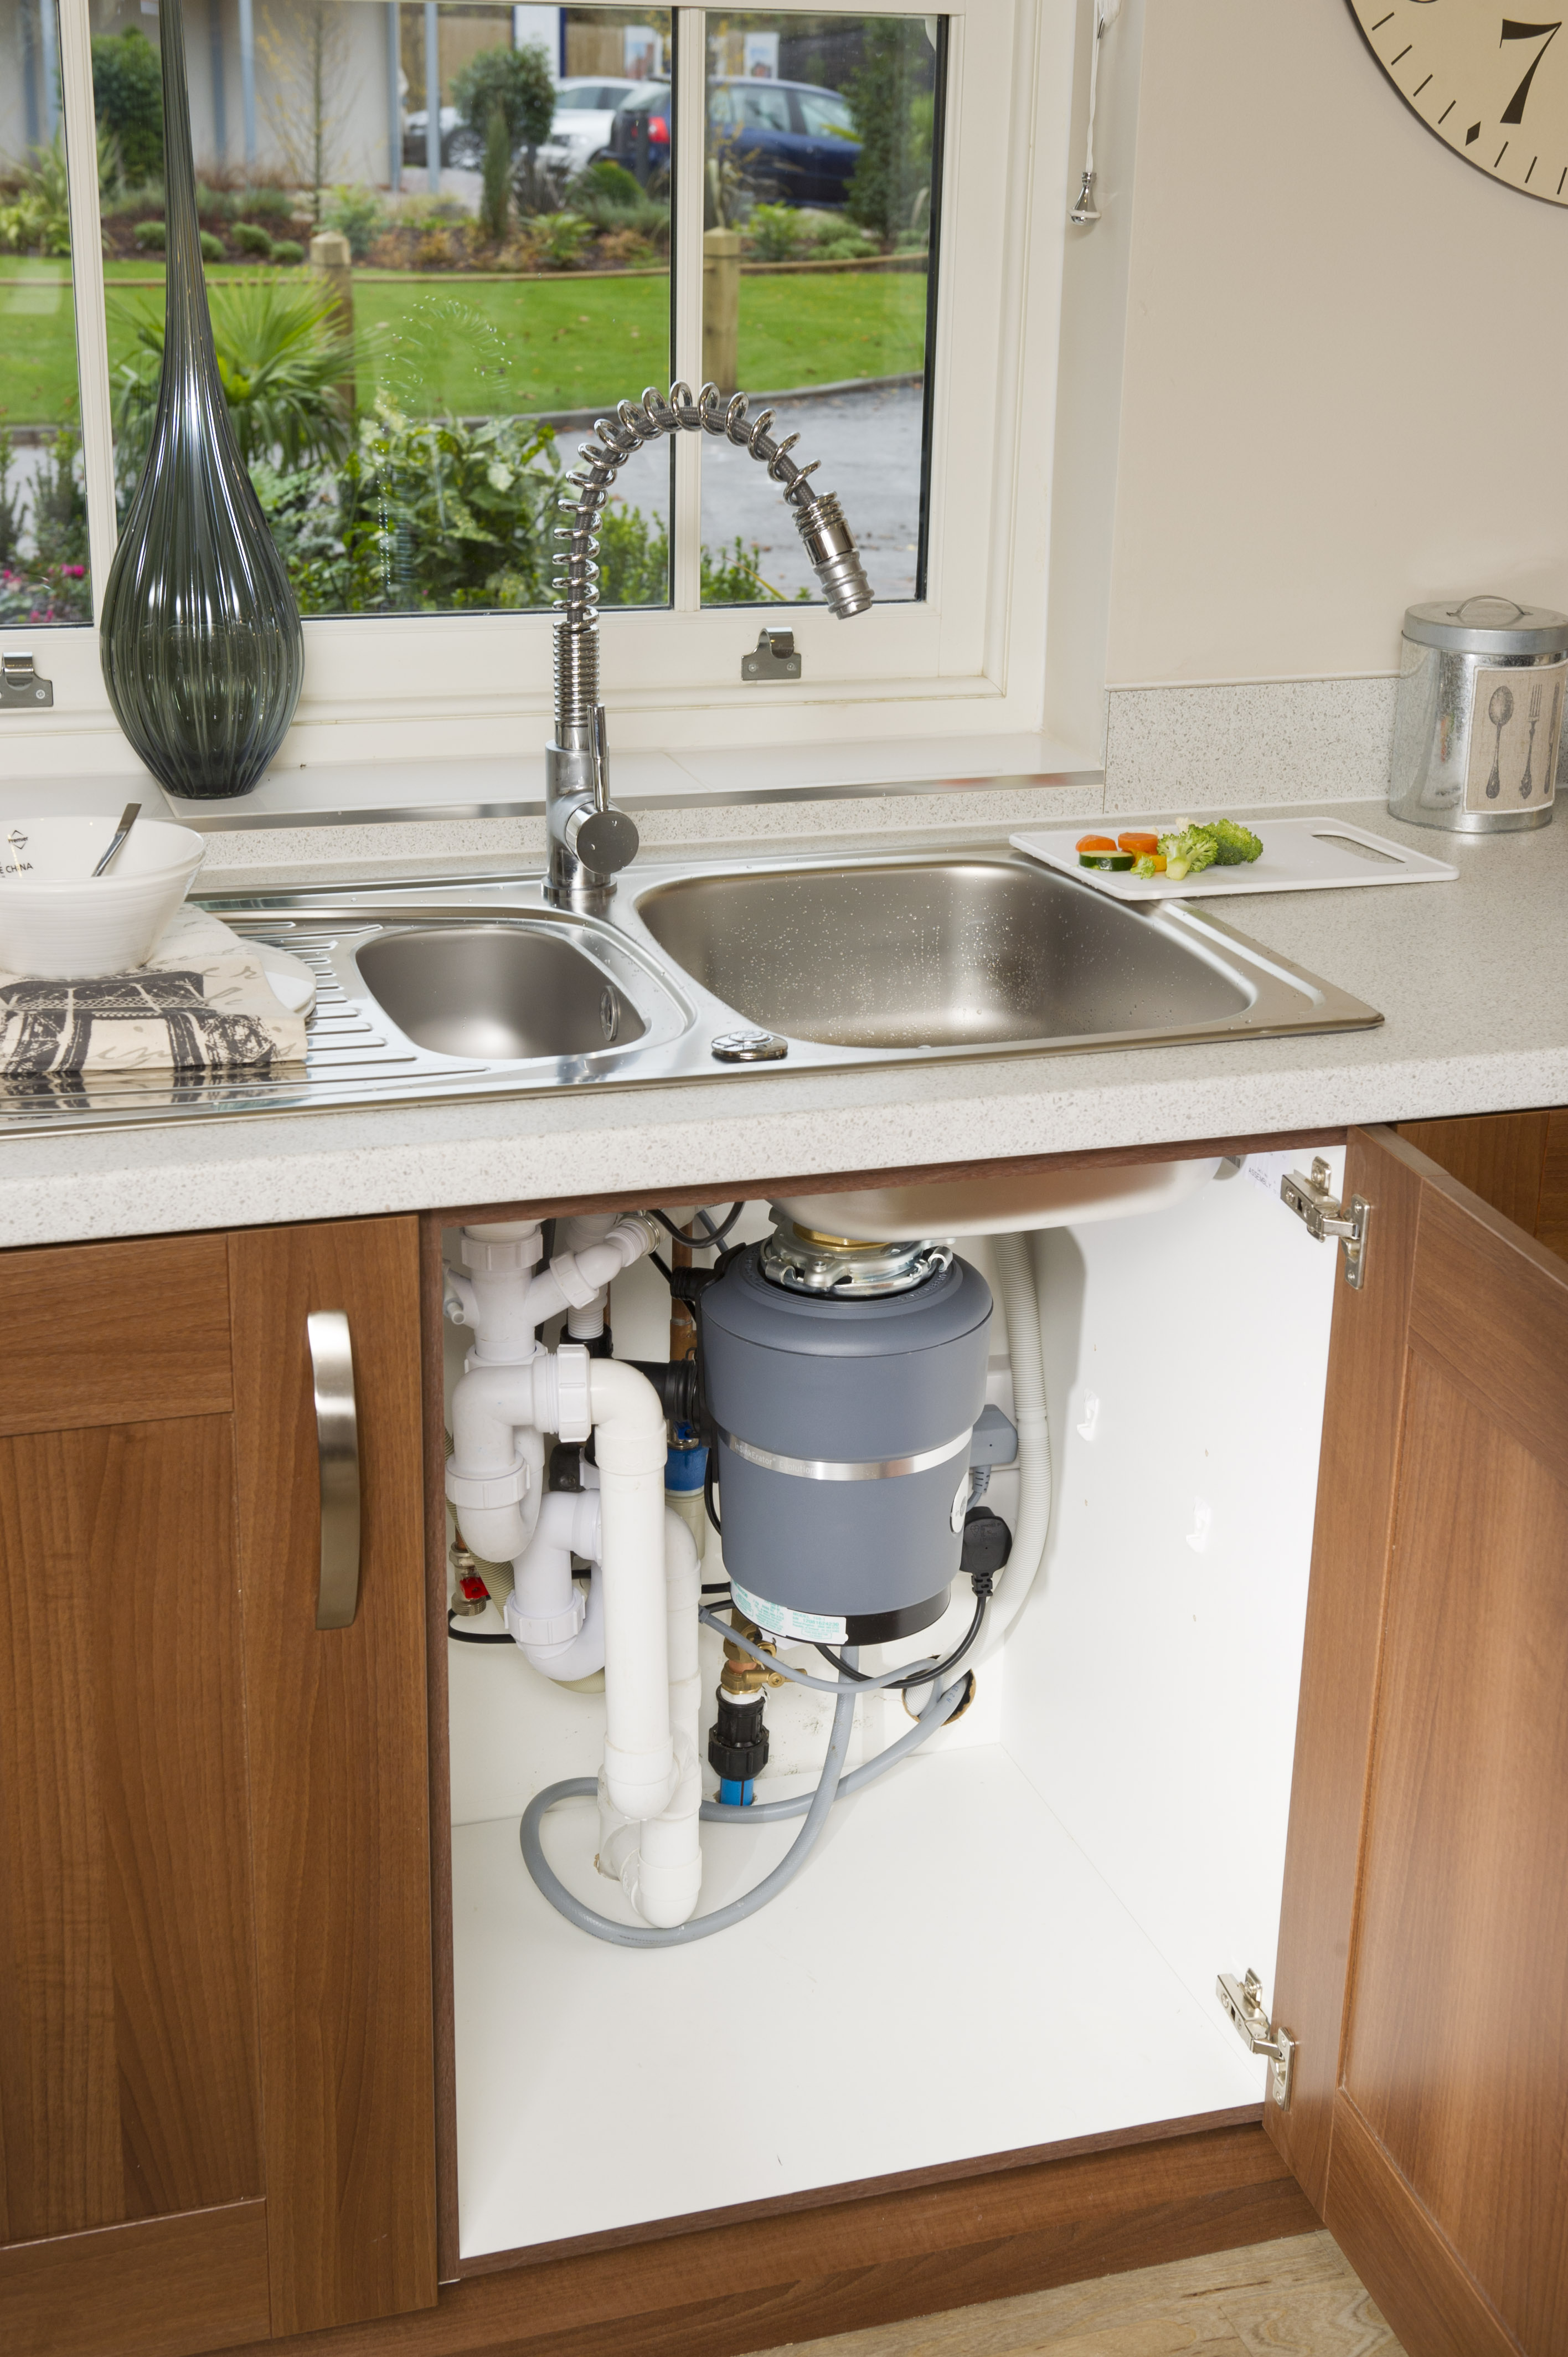 Kitchen Sink Garbage Disposal. Impacts Of Food Waste Disposers